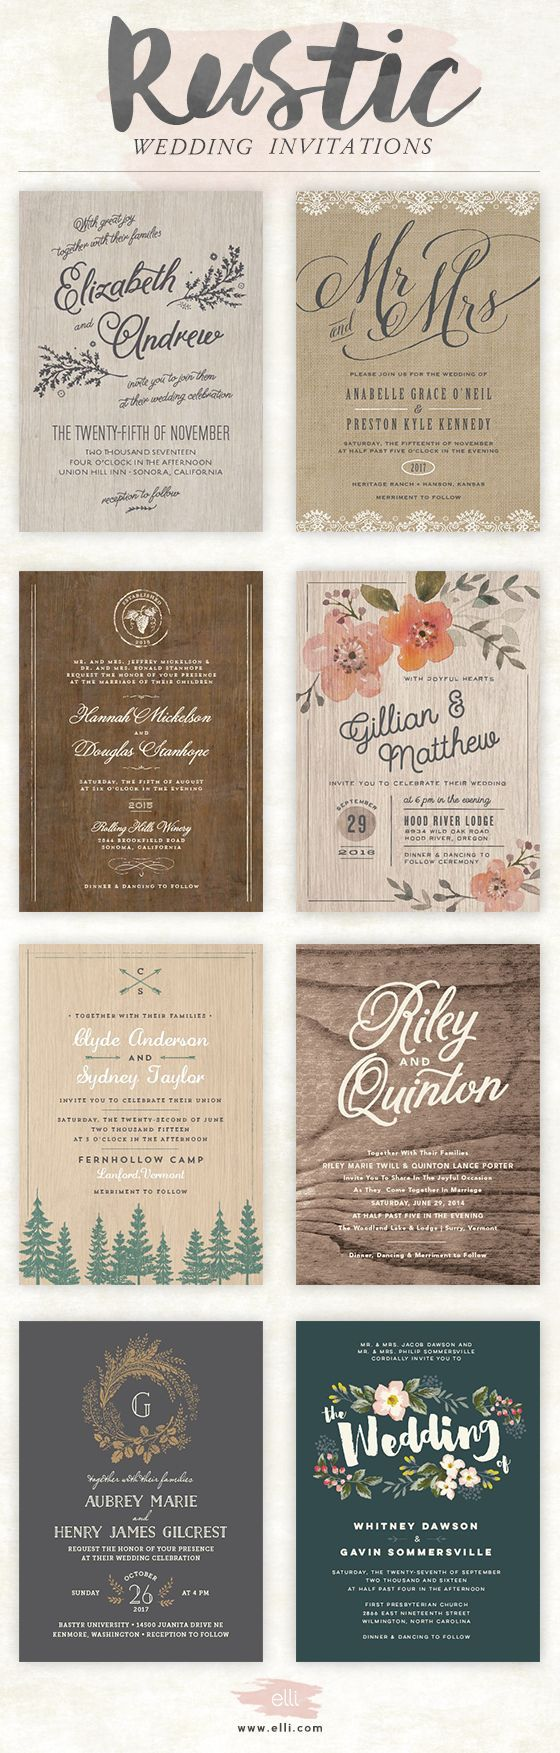 funny wedding invitation rsvp goes viral%0A Rustic wedding invitations   bellacollina com   Bella Collina Weddings